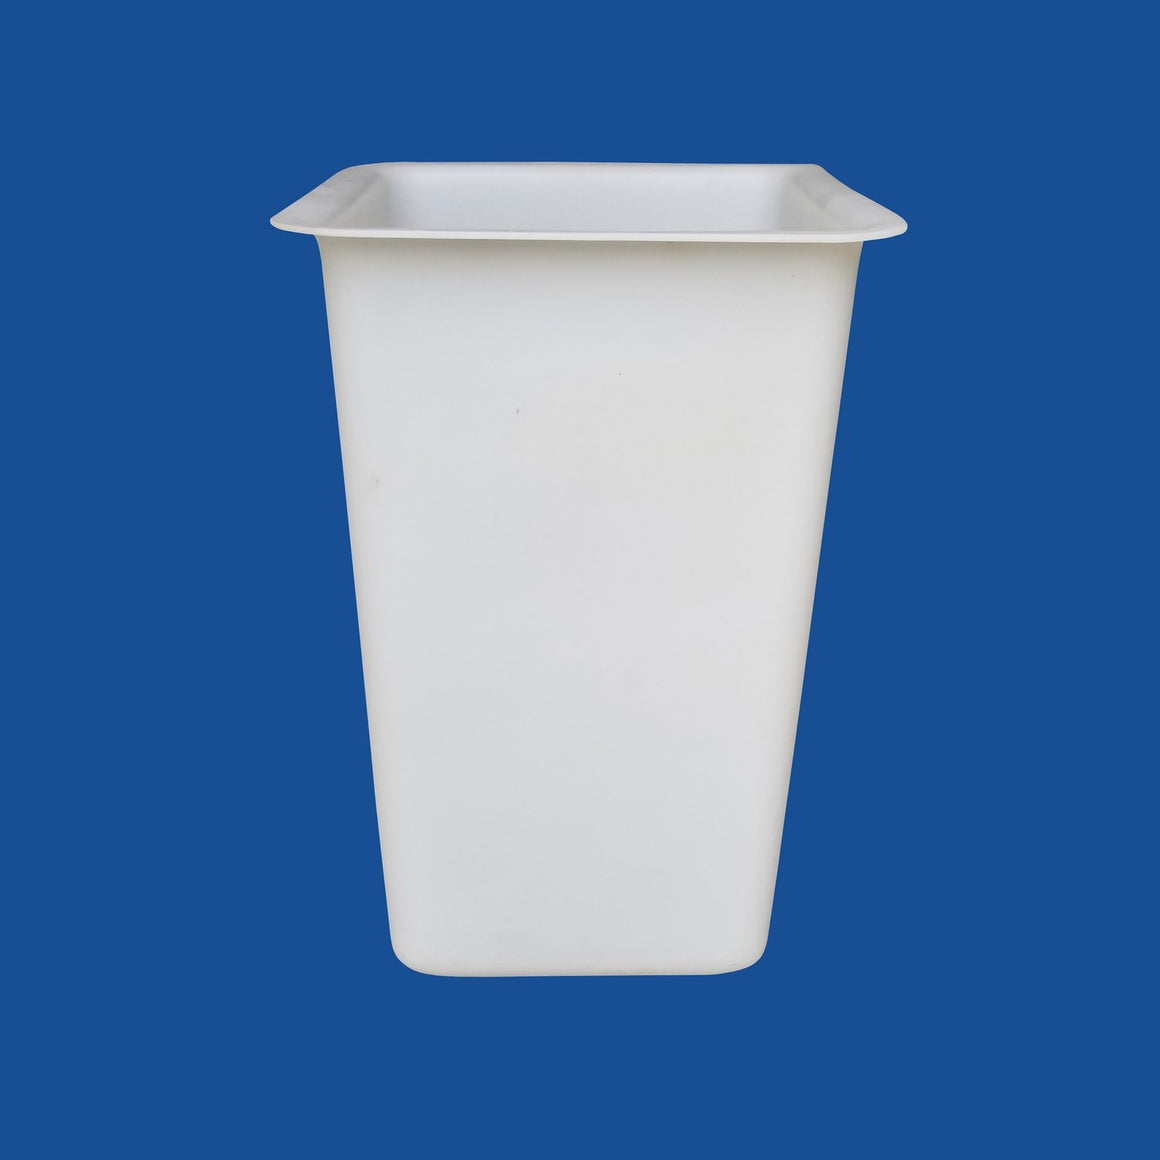 "Bucket Liner - 24"" x 24"" x 39"" - Single Man - (Nonskid) - Bucket Truck Parts"